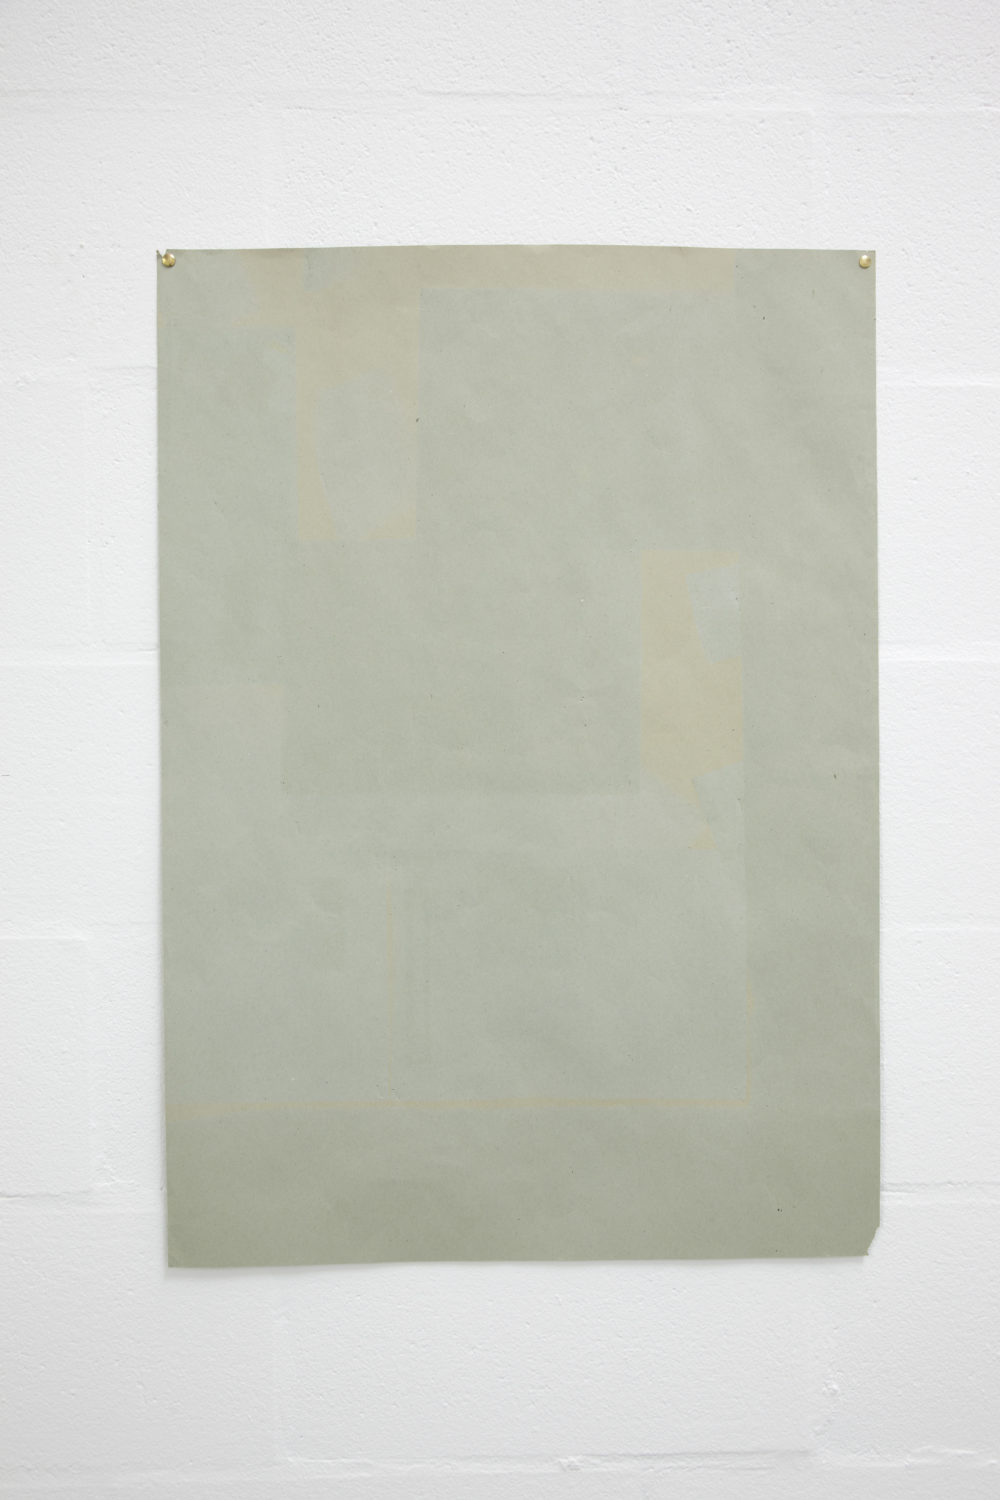 Installation view of Sara MacKillop, Faded Paper (2011). A sheet of green sugar paper, faded by the sun, is pinned to the white gallery wall.